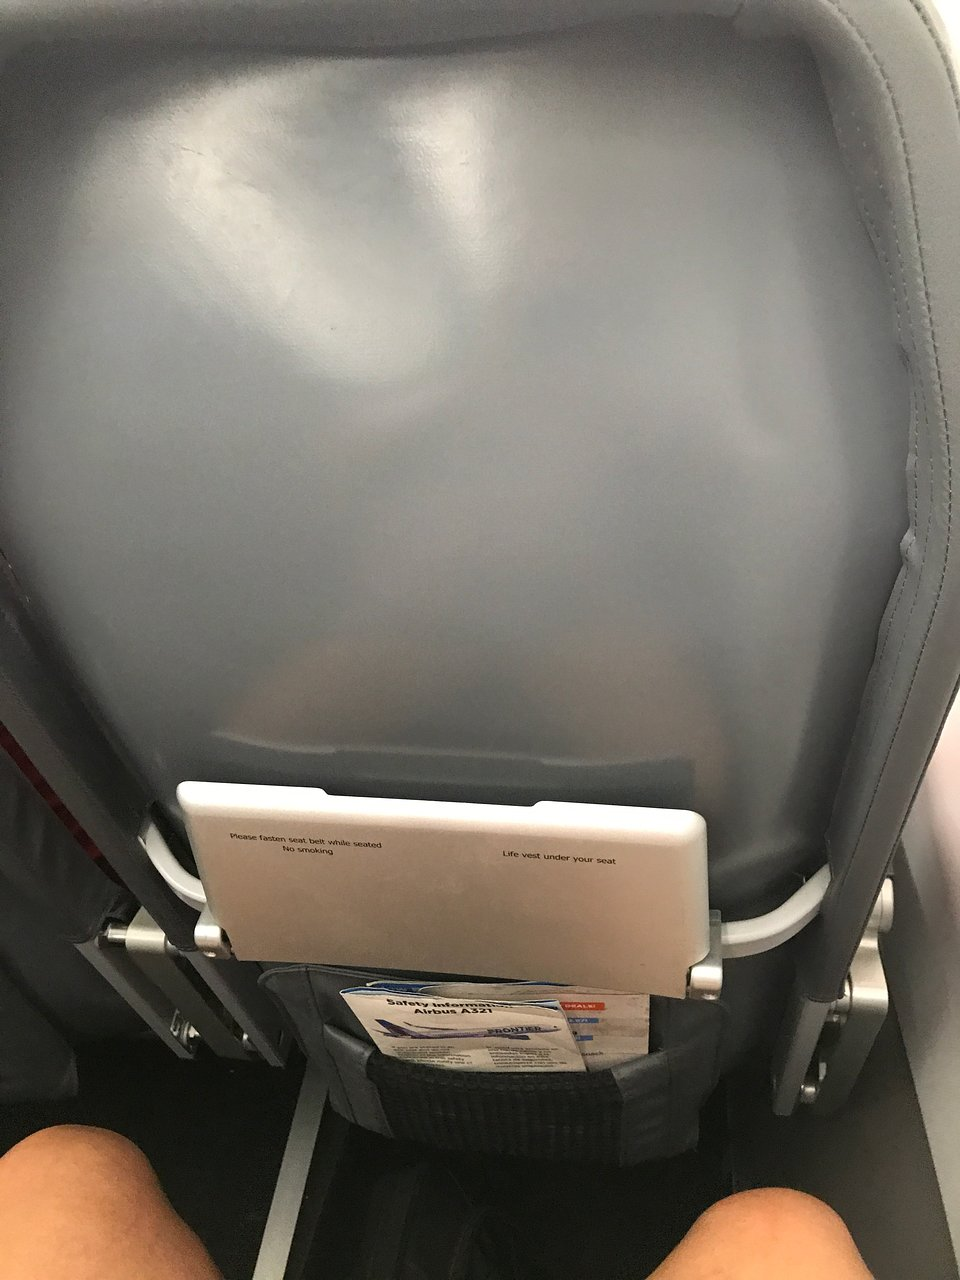 Frontier Airlines Flights and Reviews (with photos